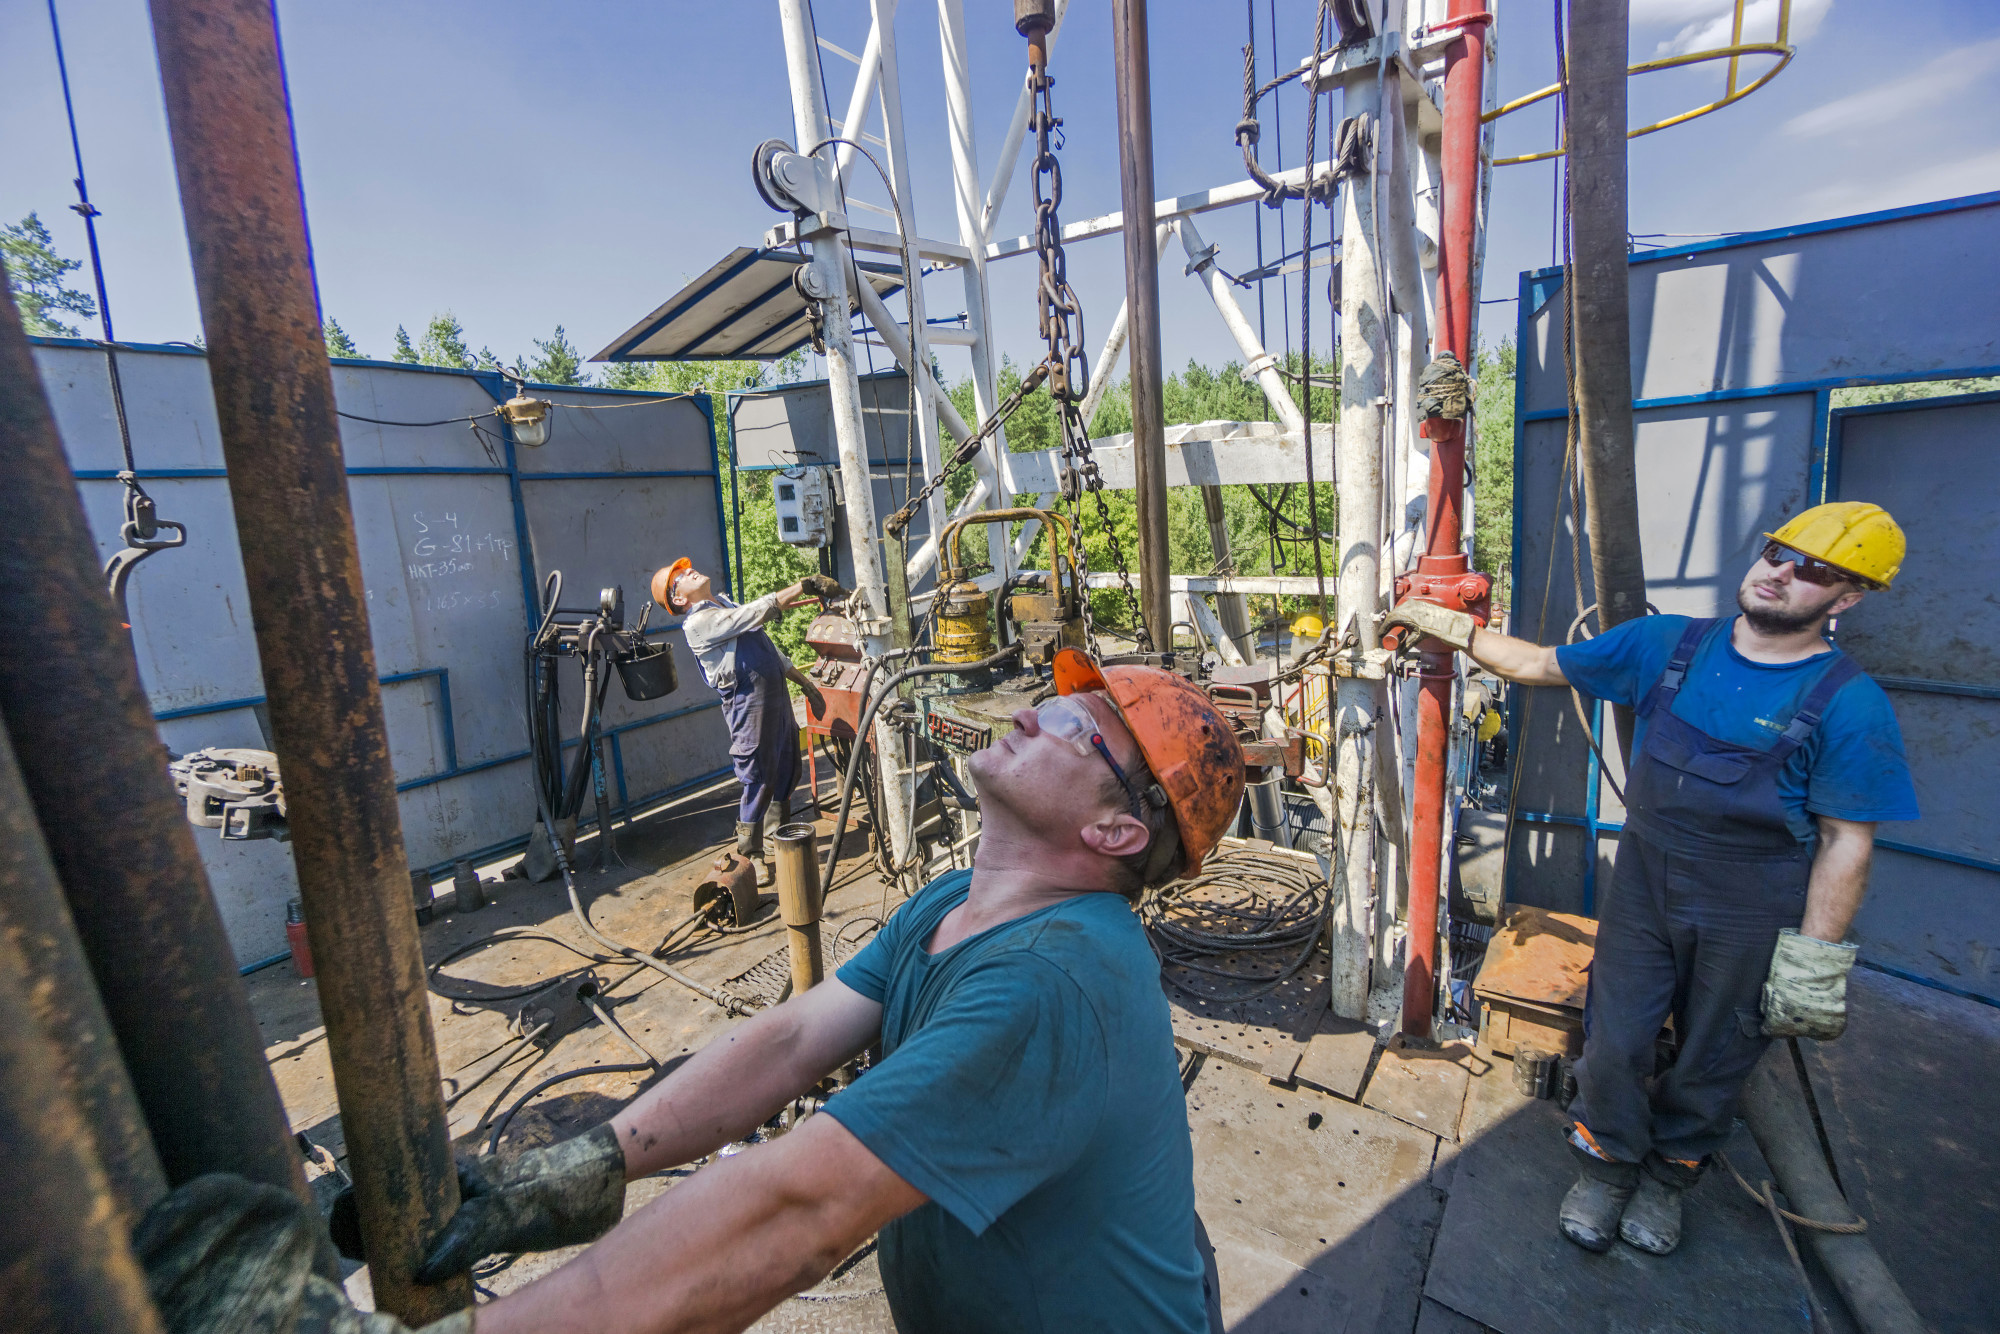 A worker selects a drill tube on a gas rig during drilling operations by DK Ukrgazvydobuvannya (UGV), a unit of NAK Naftogaz Ukrainy, in Poltava, Ukraine, on Friday, July 21, 2017. Investors wanting to take the temperature of Ukraine's reform drive could do worse than look in on state-run energy firm Naftogaz, where a battle for control underscores the obstacles hampering wider efforts to clean up the ex-communist economy. Photographer: Vincent Mundy/Bloomberg